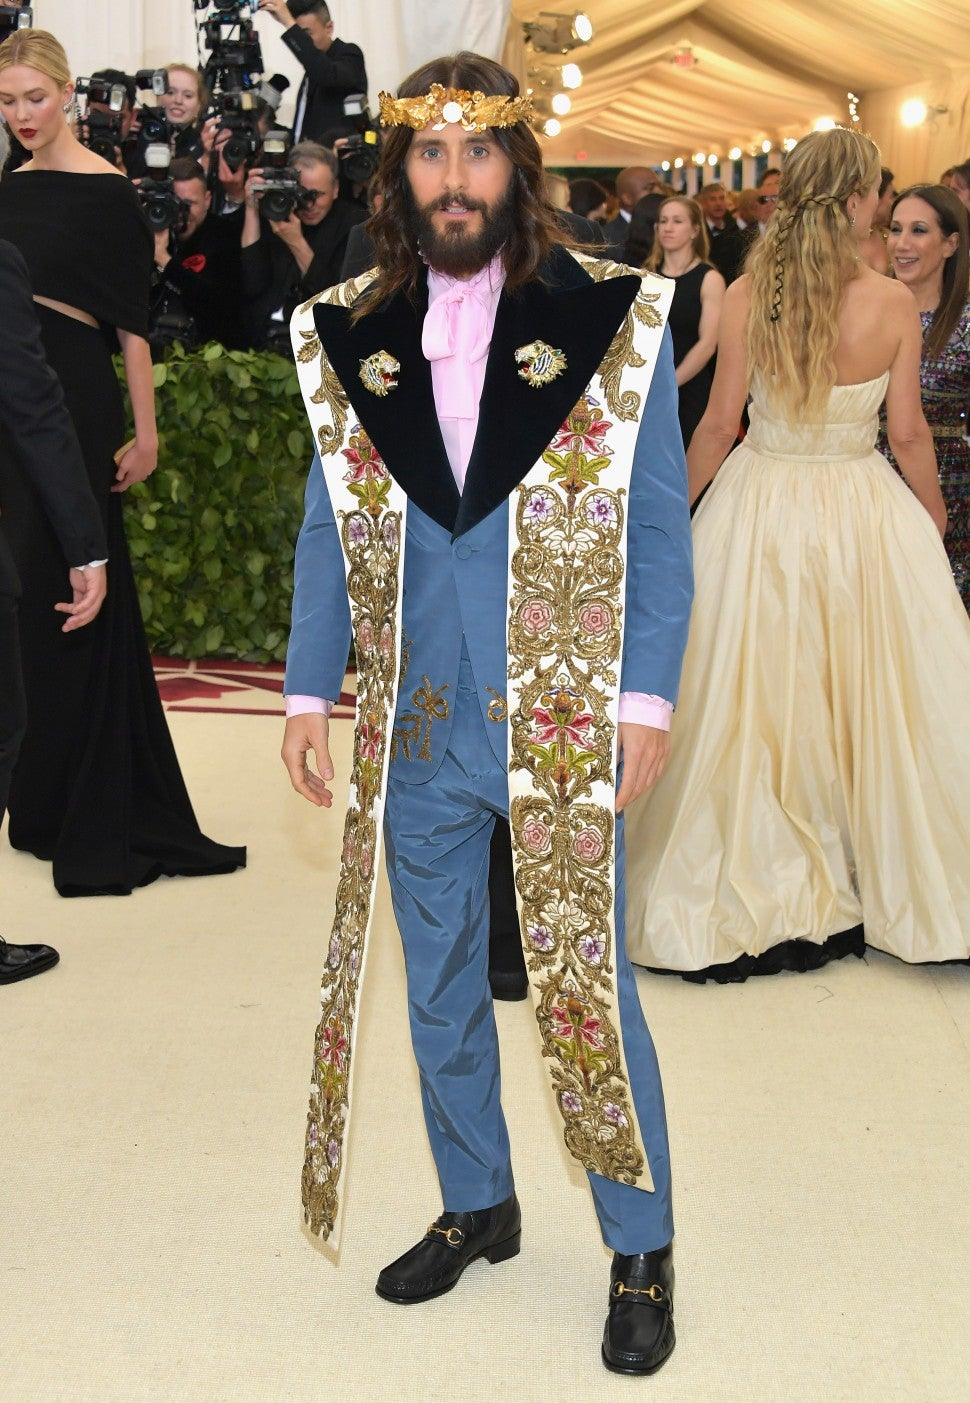 Jared Leto at the 2018 Met Gala in New York